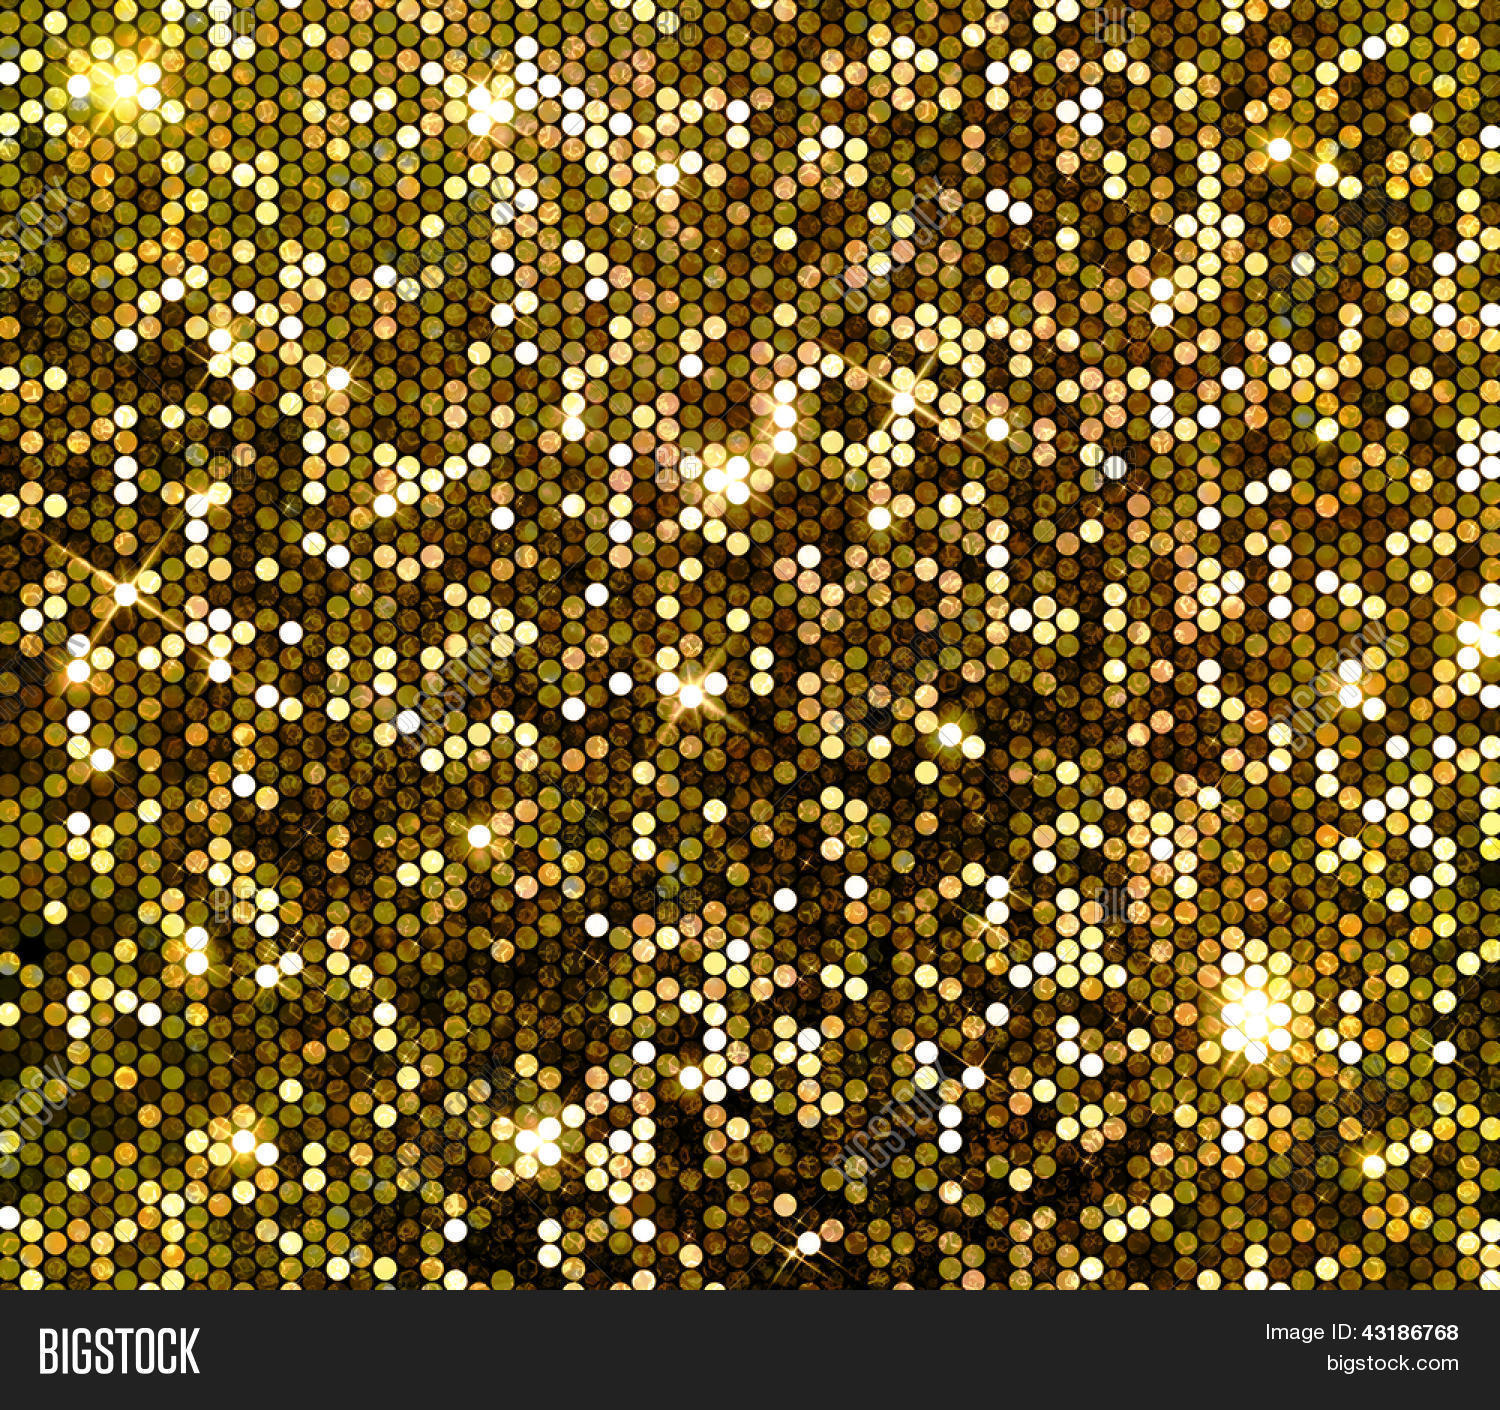 Gold Sparkle Glitter Background. Image & Photo | Bigstock